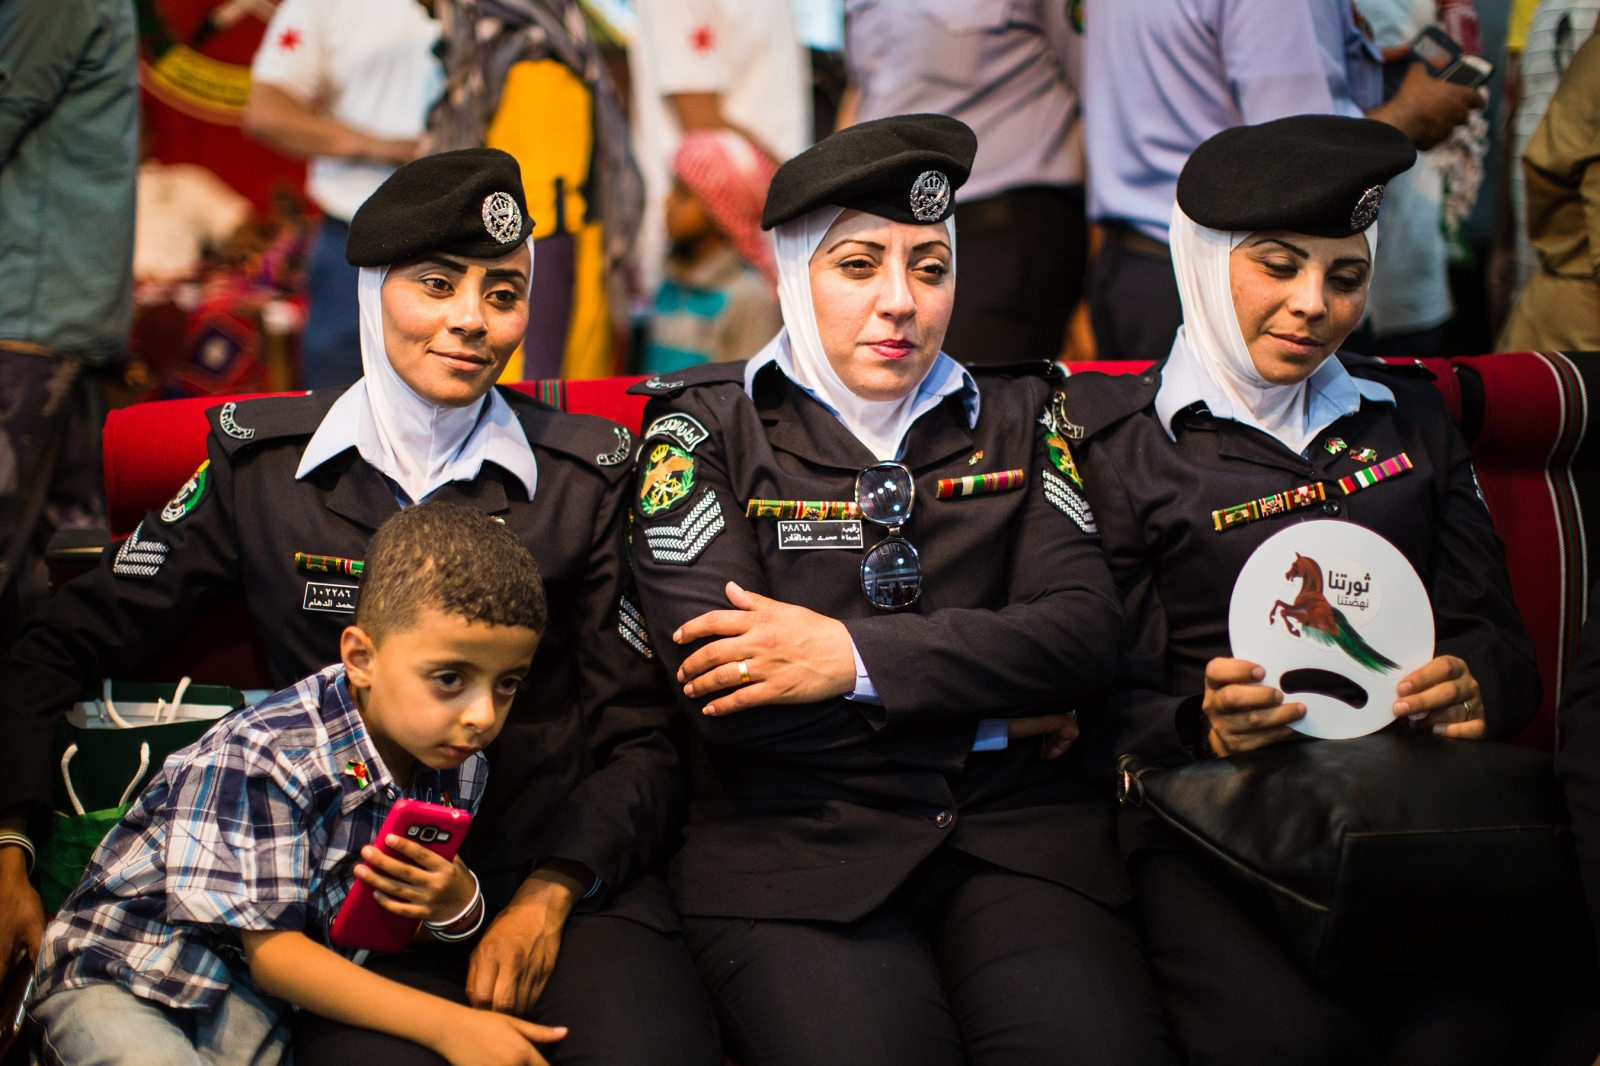 Jordanian women police officers sit with their kids at a police exhibition at a festival marking the 100th anniversary of the Great Arab Revolt in Amman, Jordan, on June 3, 2016.